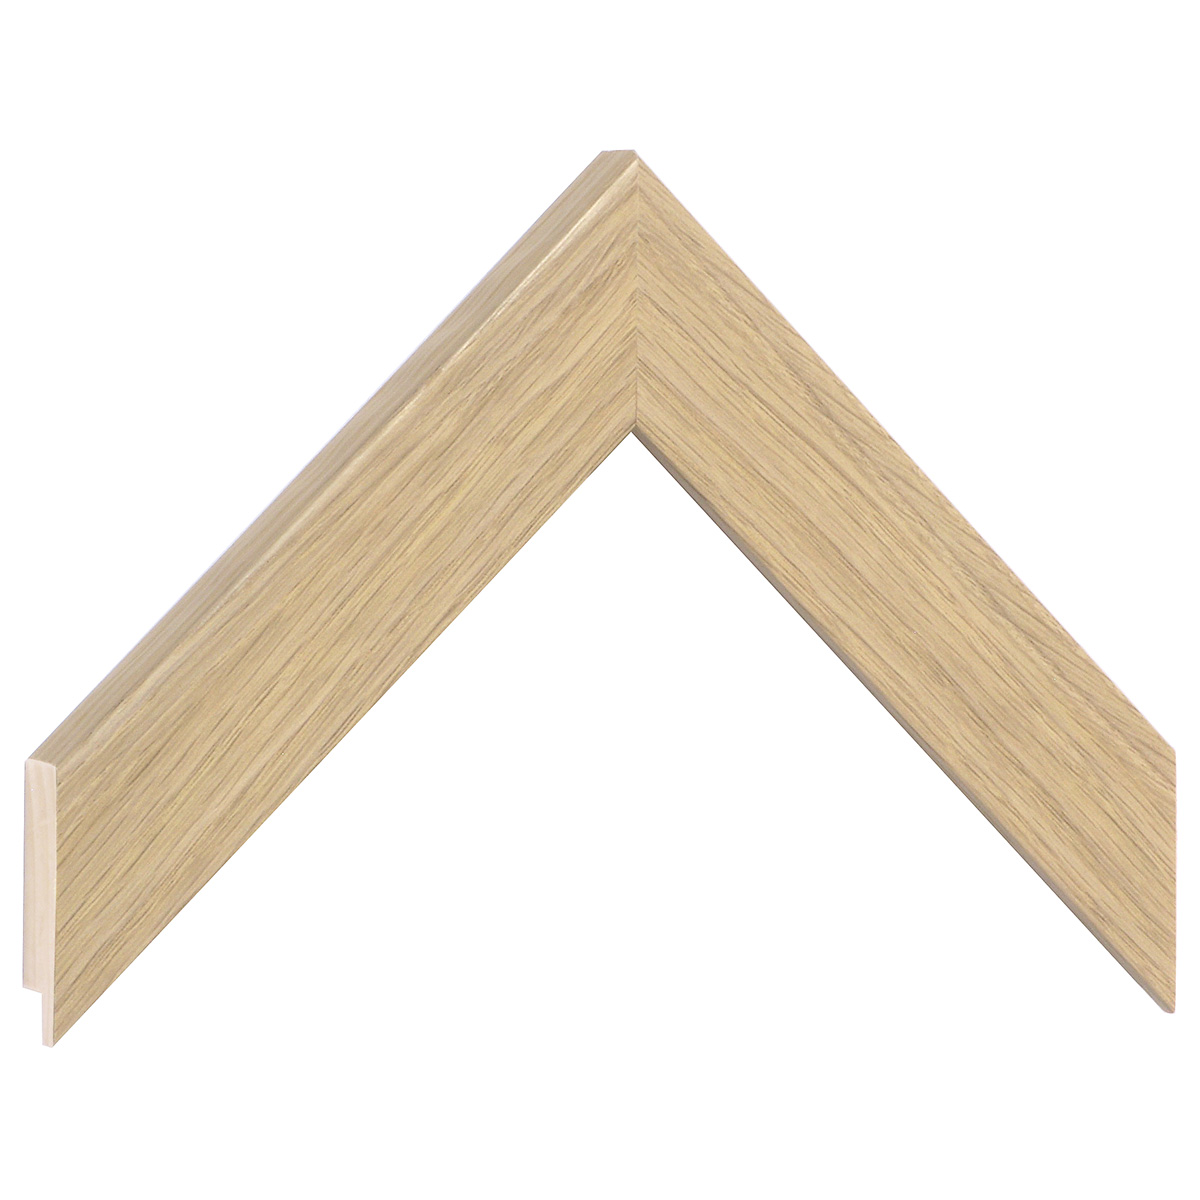 Moulding pine 34mm - veneered, colour beech (mt 12)